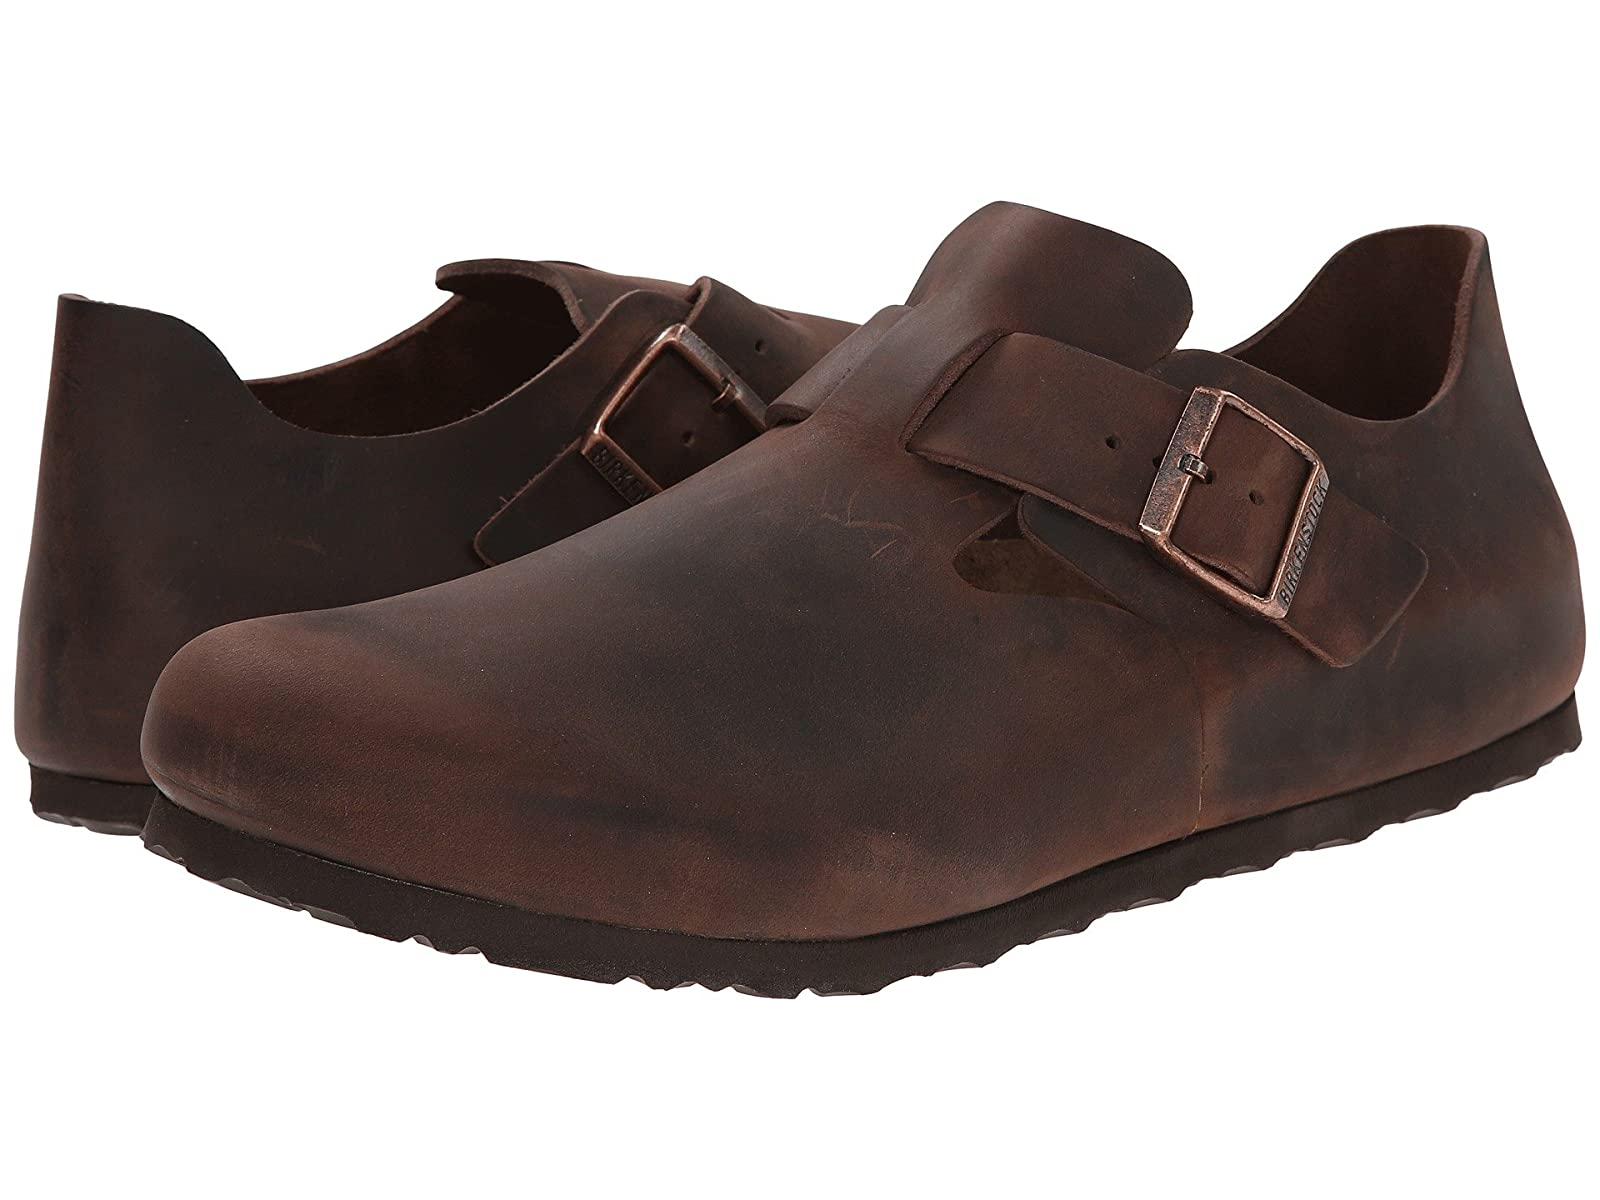 Birkenstock LondonEconomical and quality shoes